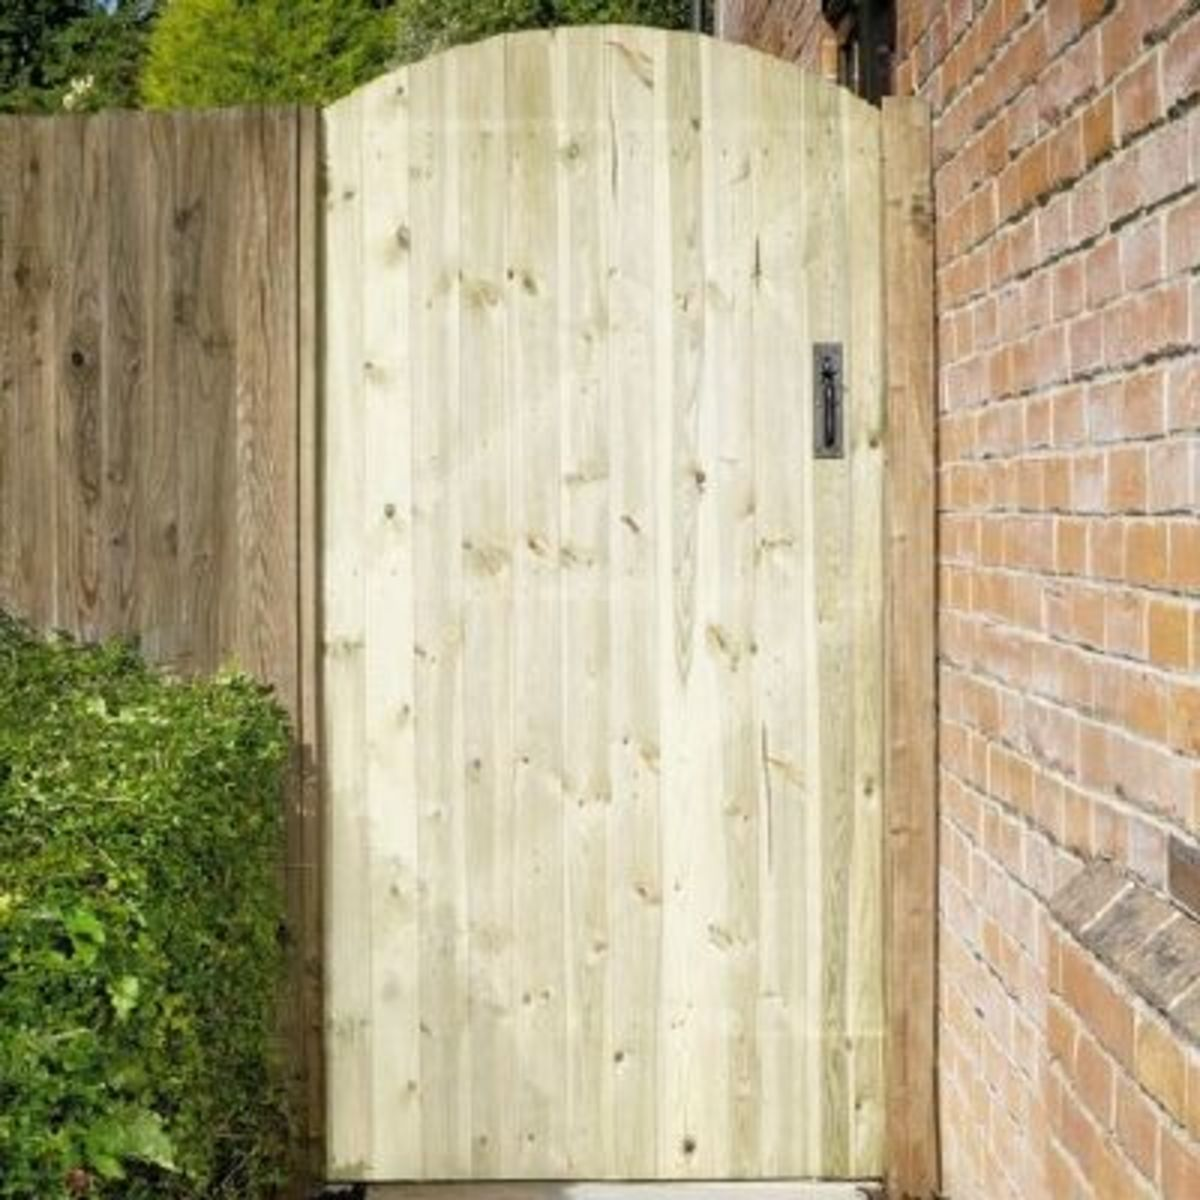 Wooden gates - Tall single side entrance wooden gates - Oxford gate